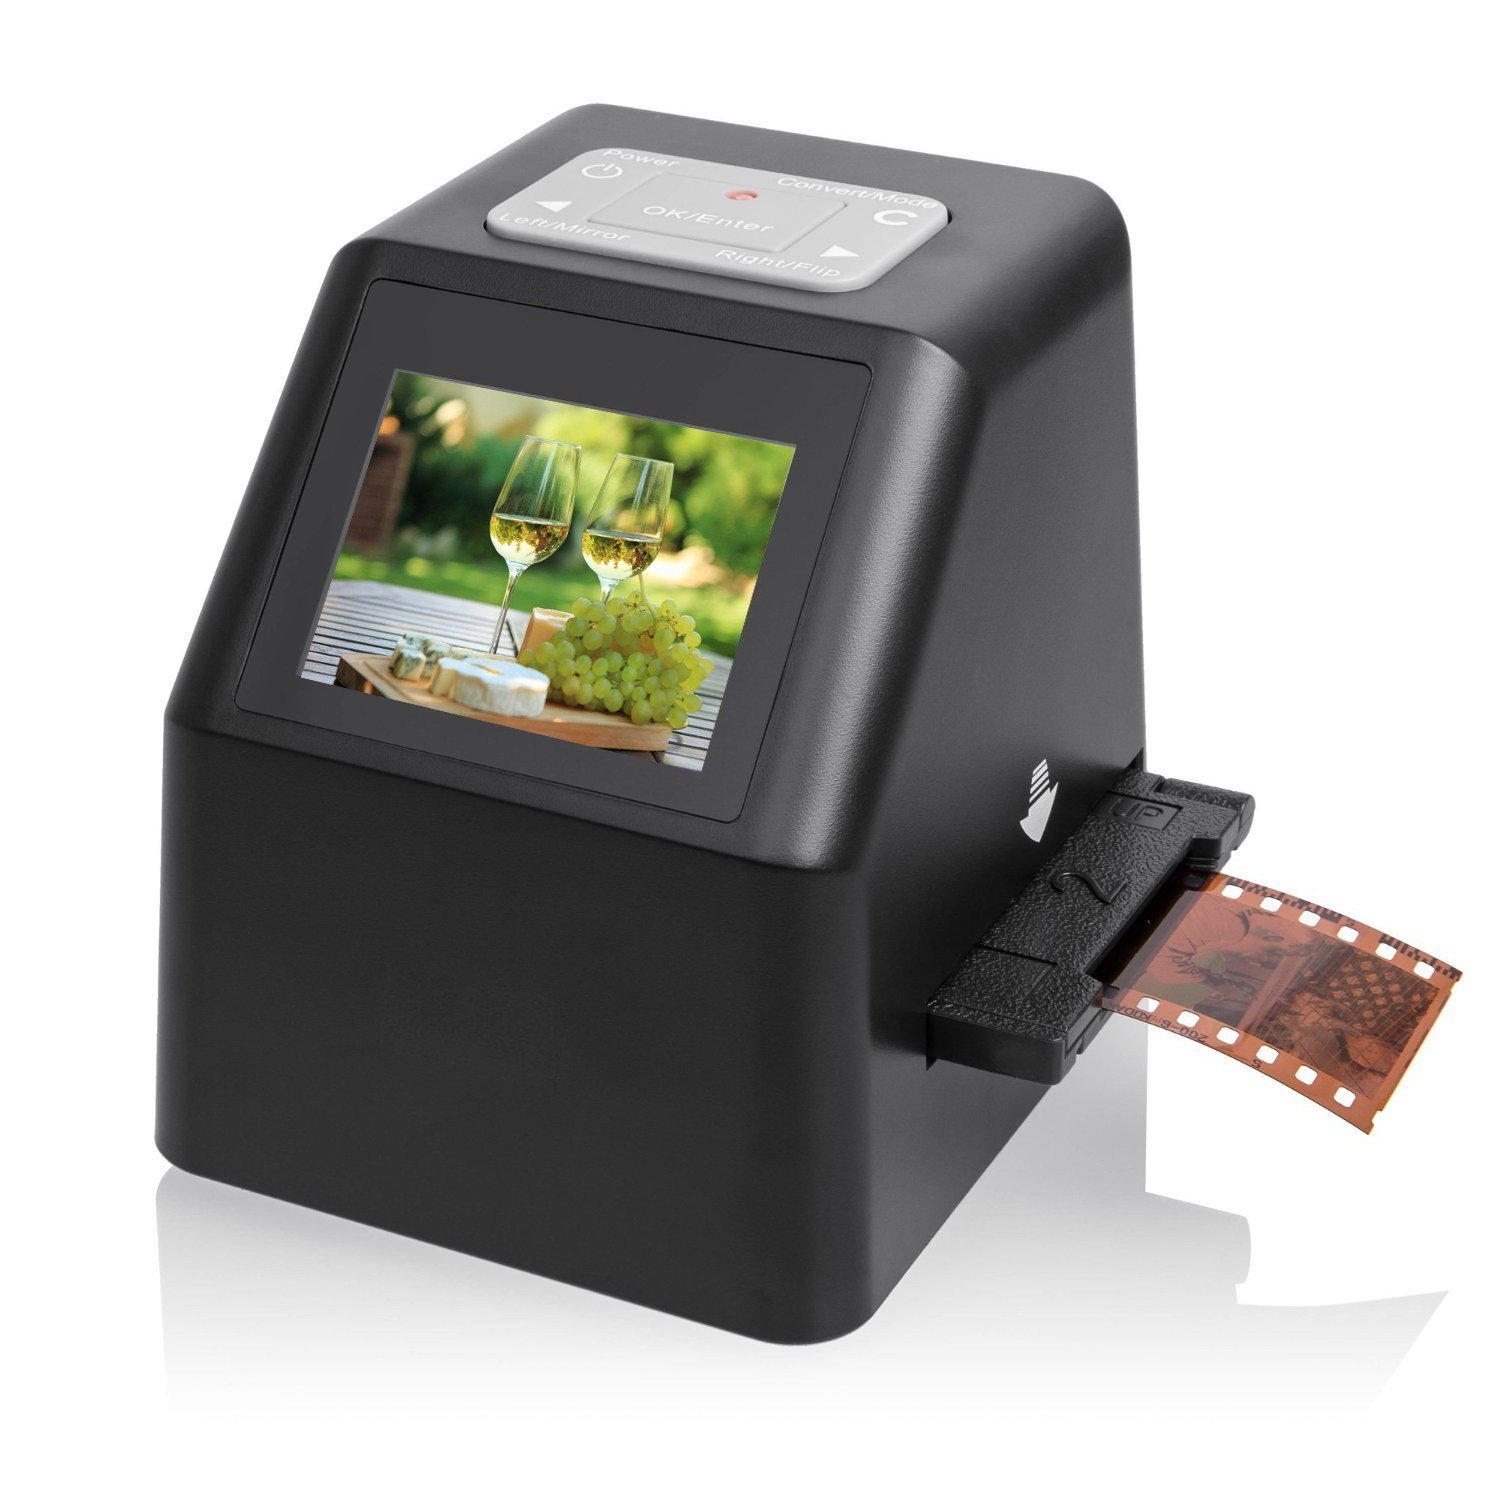 Emperor of gadgets film scanner to convert film negatives and photo emperor of gadgets film scanner to convert film negatives and photo slides to jpg digital files 14 megapixel 22mp max scanner for 35mm film slides and reheart Choice Image